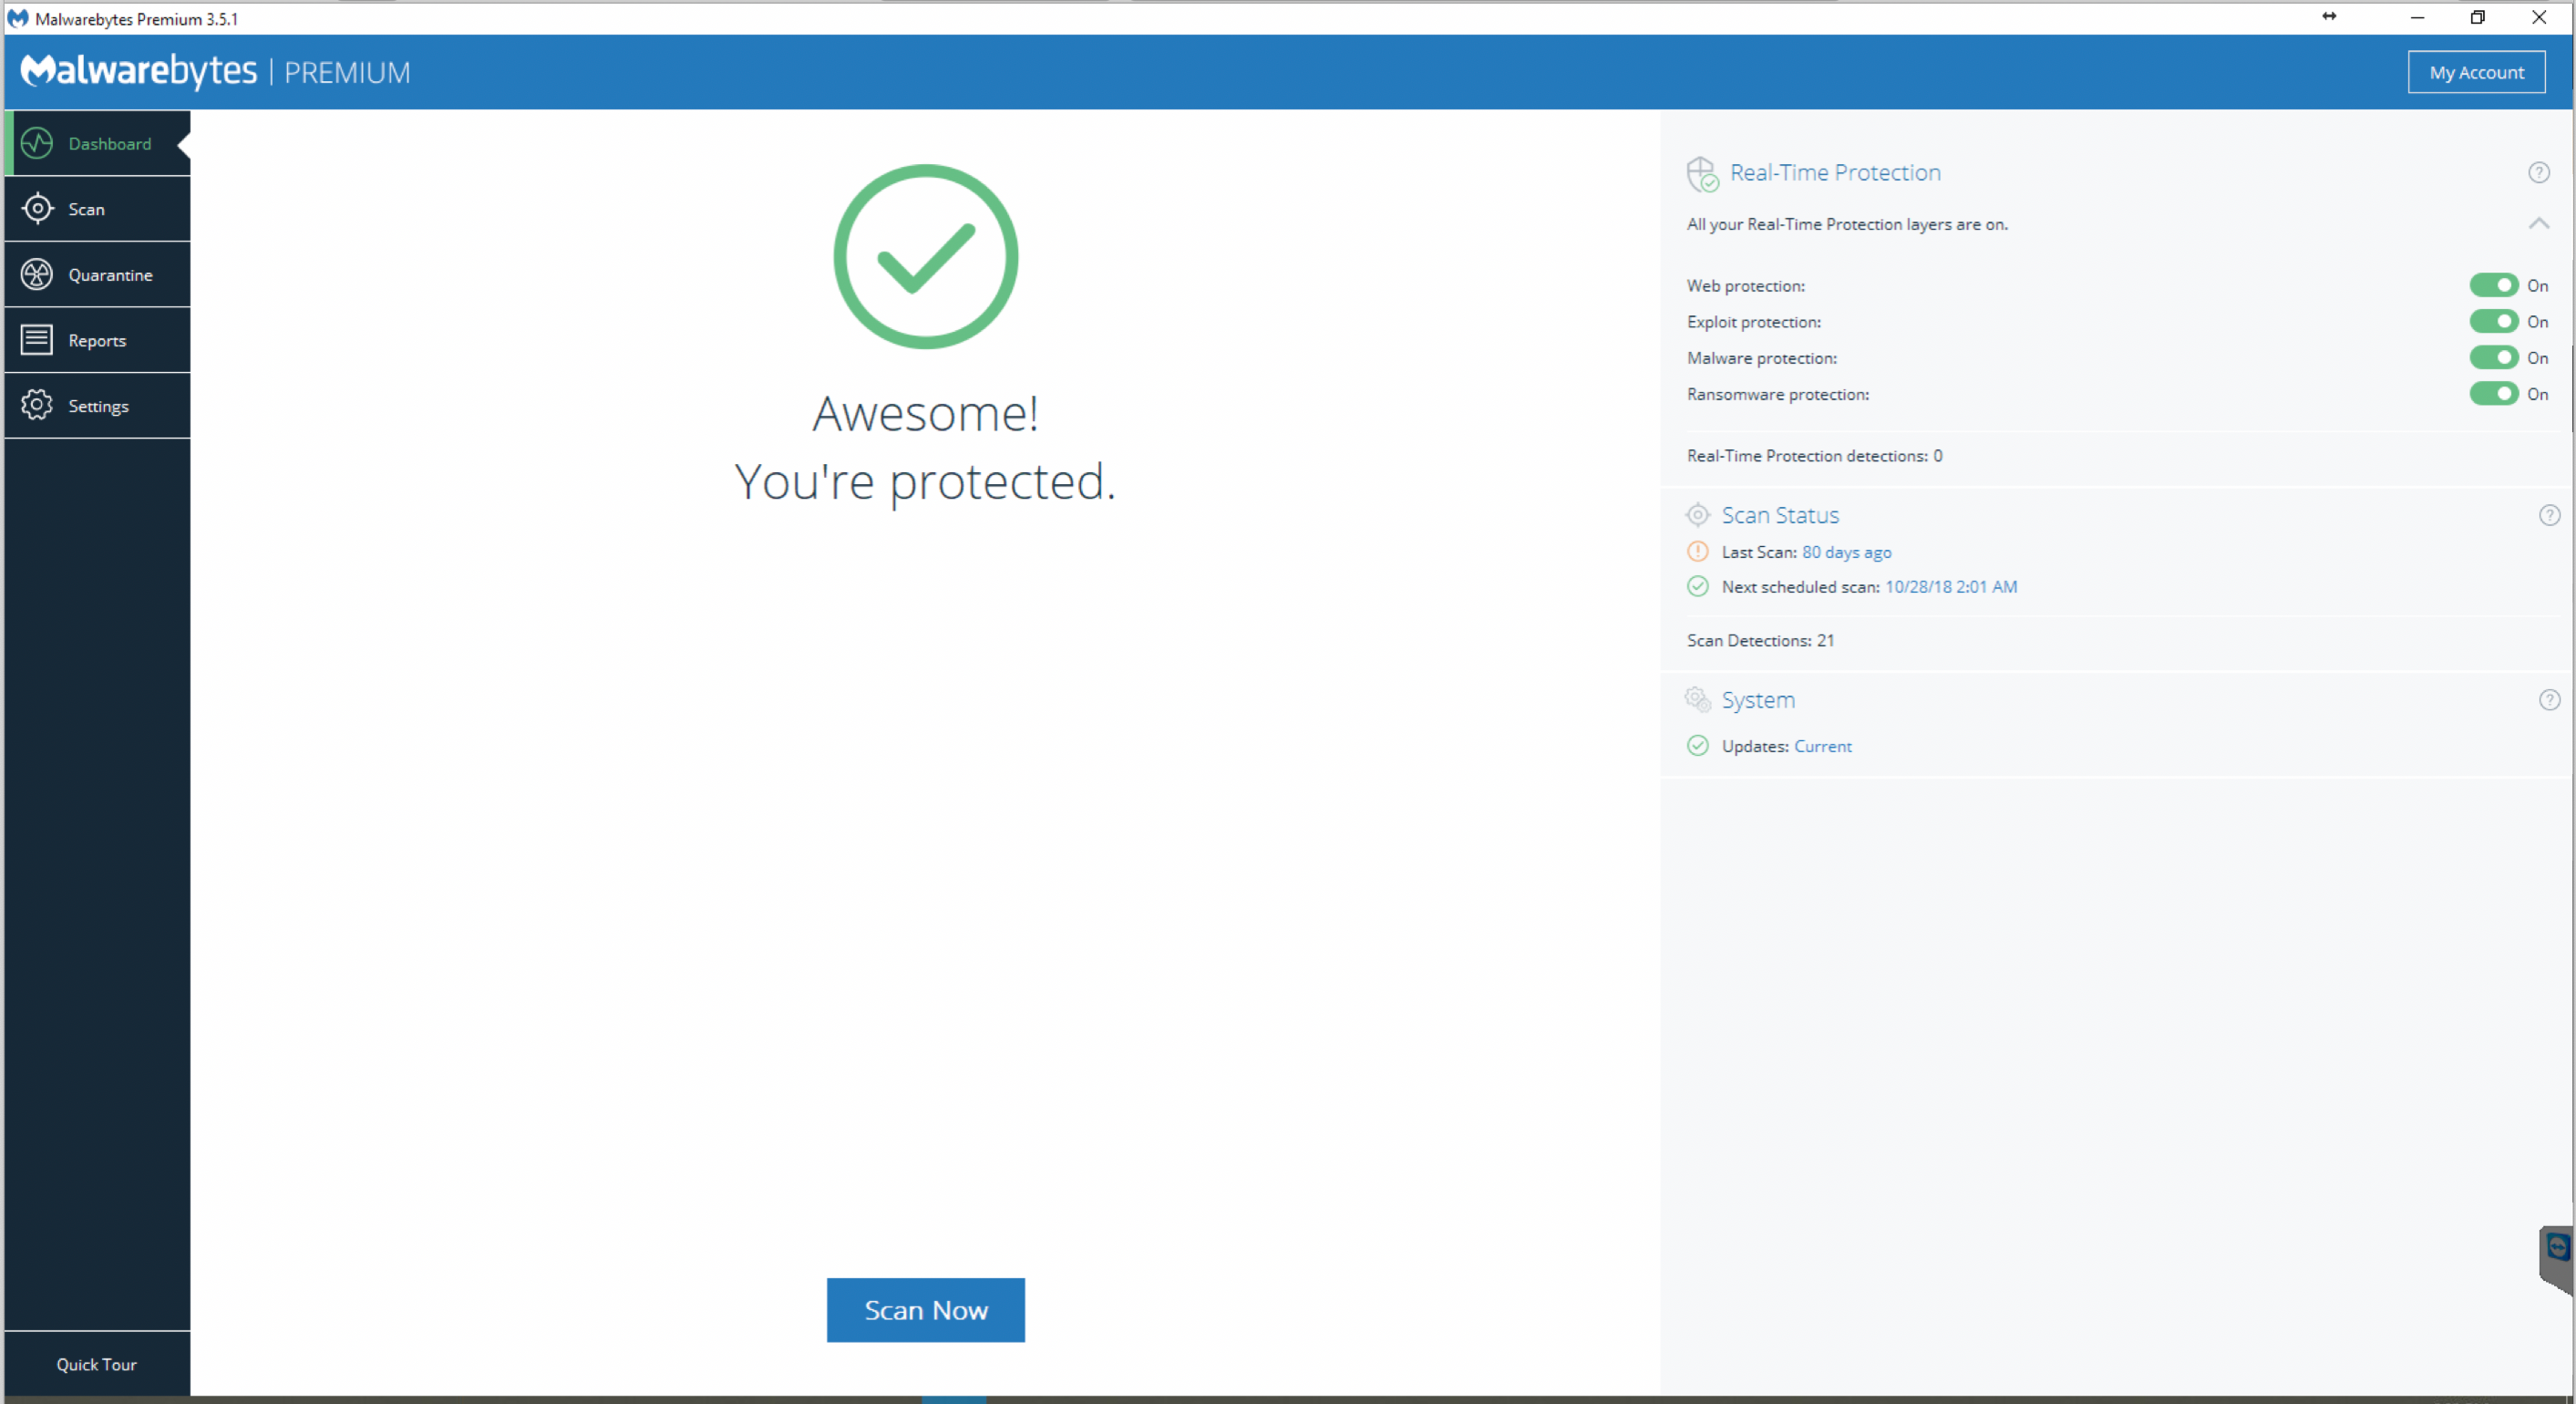 malwarebytes anti-malware premium license